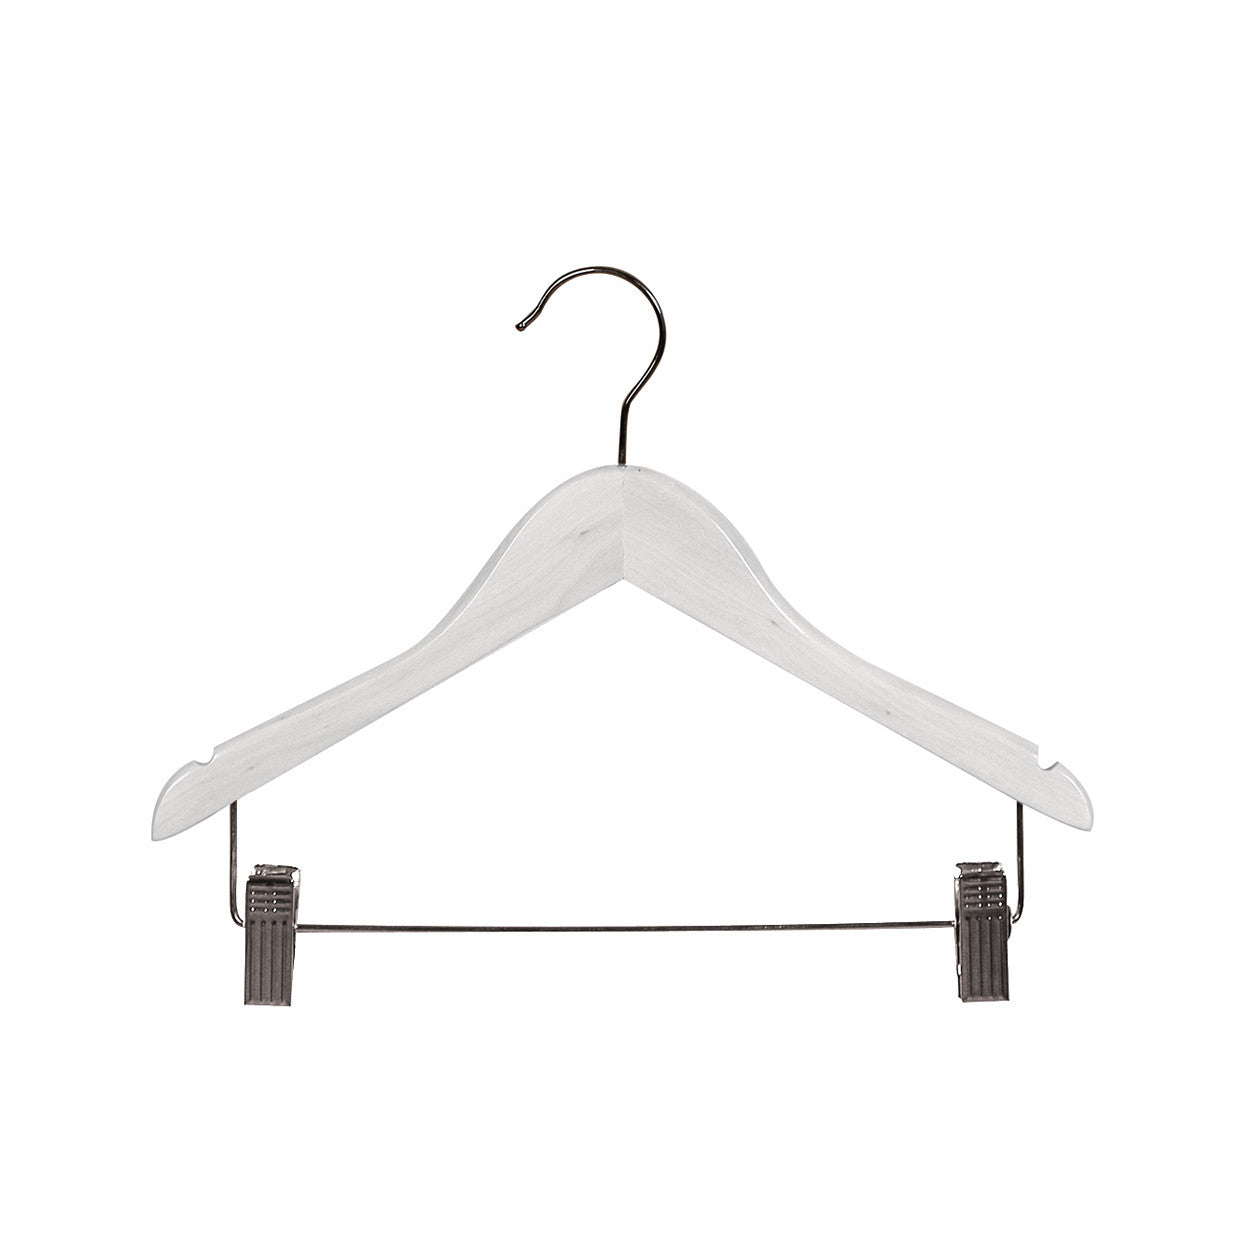 White Kids wooden hanger with notches & adjustable clips 350Wx12 mm Thick (Bundle of 50) H2605WH-50